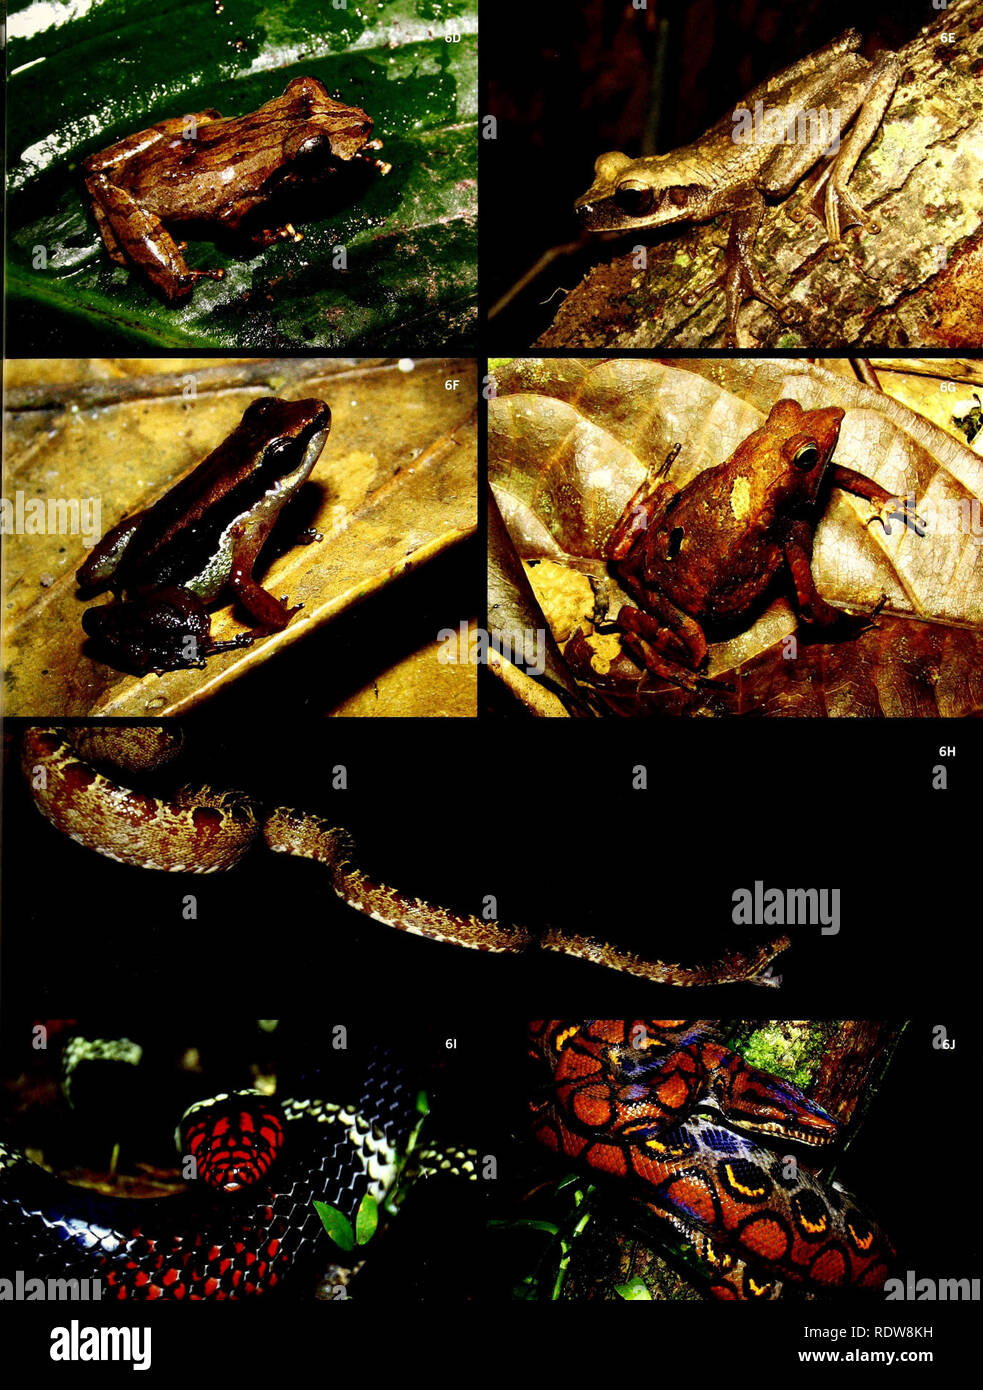 . Ecuador, Perú : Cuyabeno-Güeppí. Natural history; Natural history. . Please note that these images are extracted from scanned page images that may have been digitally enhanced for readability - coloration and appearance of these illustrations may not perfectly resemble the original work.. Alverson, William Surprison; Field Museum of Natural History. [Chicago, Ill. ] : Field Museum of Natural History - Stock Image